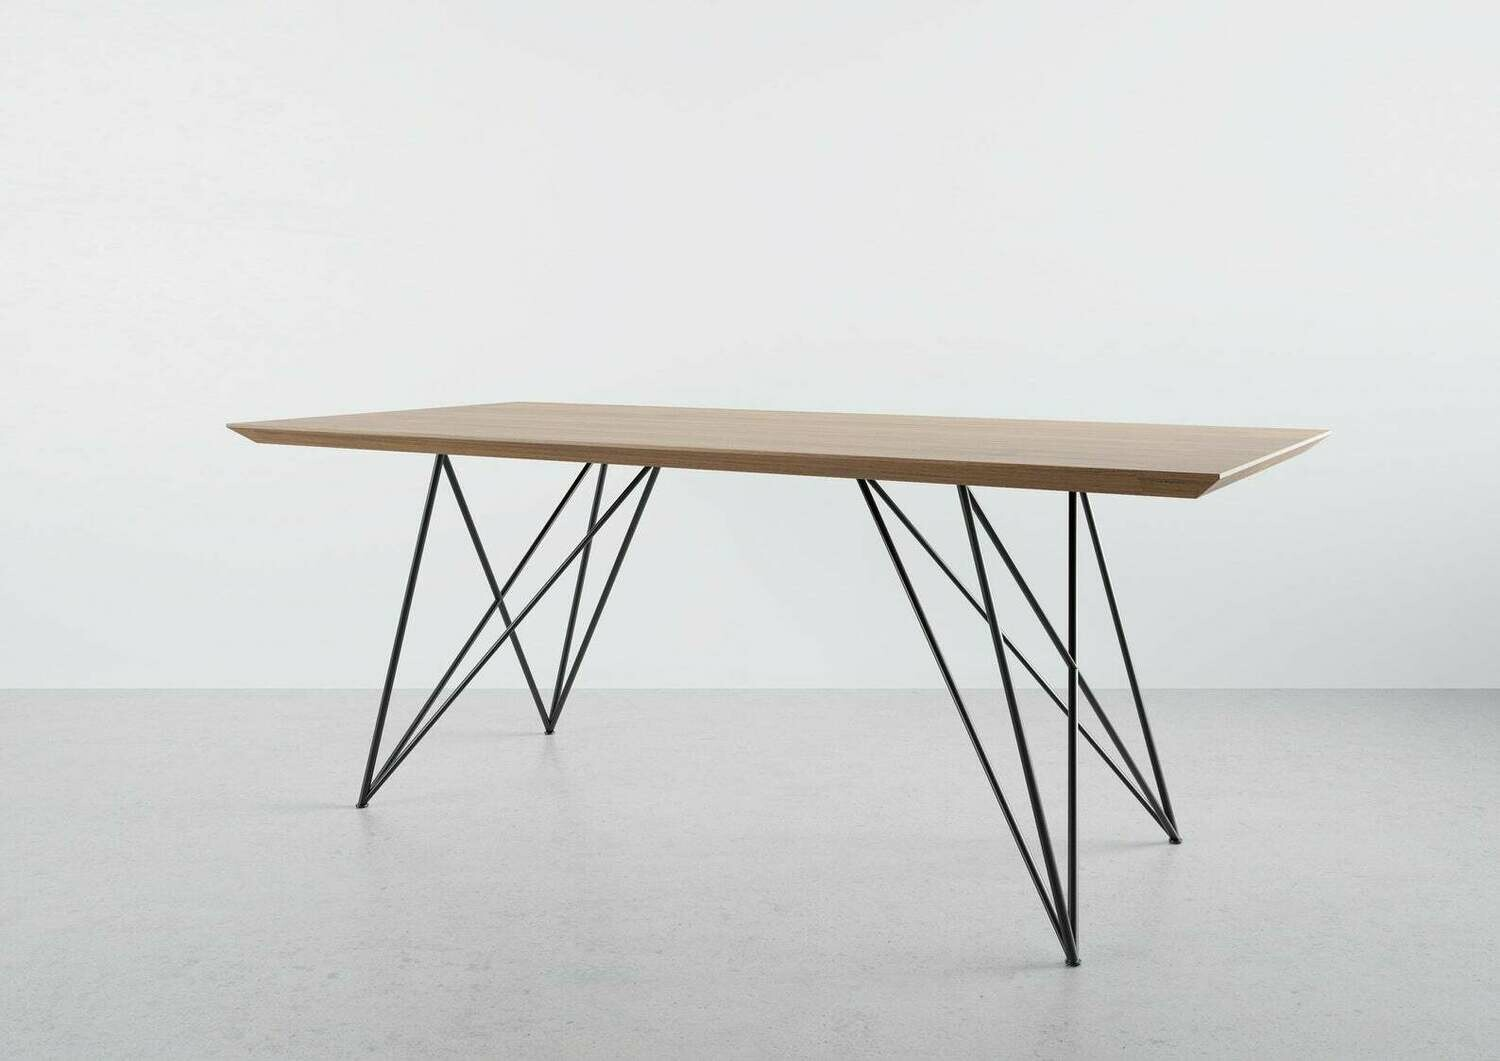 Metal Dining Table Legs (2 legs). Butterfly Steel Hairpin Table Legs for Kitchen Table. [D047]